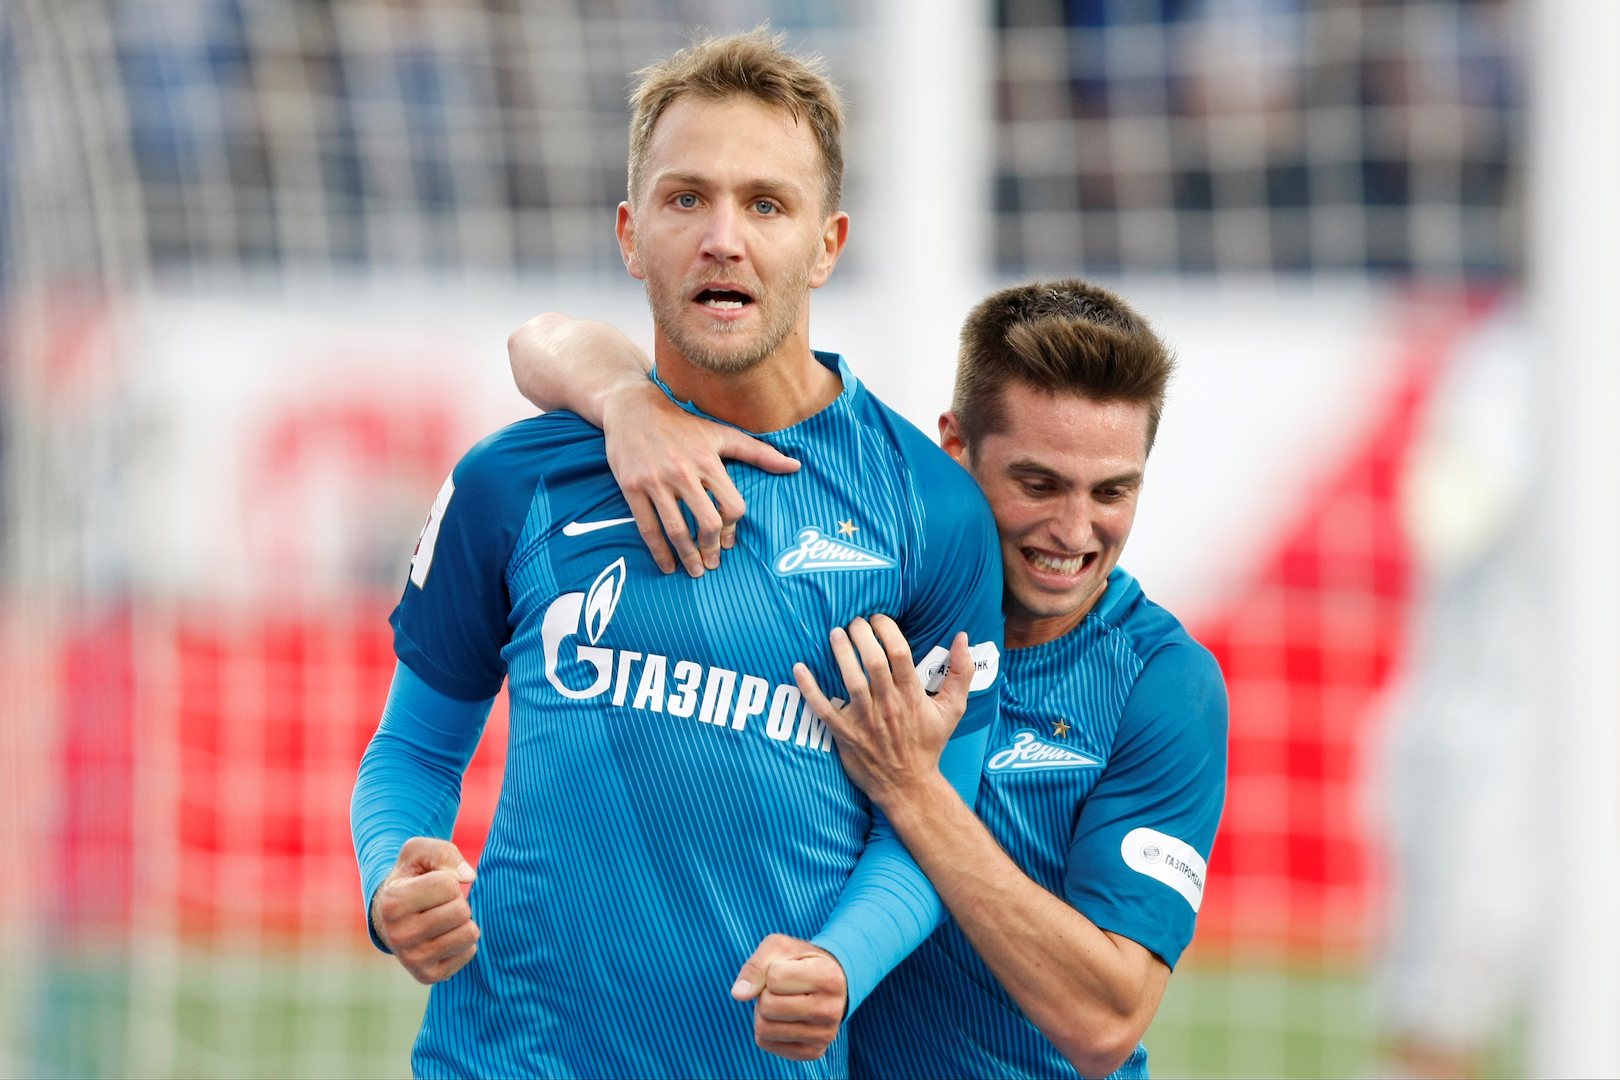 SAINT PETERSBURG, RUSSIA - OCTOBER 02: FC Zenit St. Petersburg players Domenico Criscito (L) celebrates with Robert Mak after scoring his goal during the Russian Football League match between FC Zenit St. Petersburg and FC Spartak Moscow at Petrovsky stadium on October 2, 2016 in St. Peterburg, Russia. (Photo by Epsilon/Getty Images)